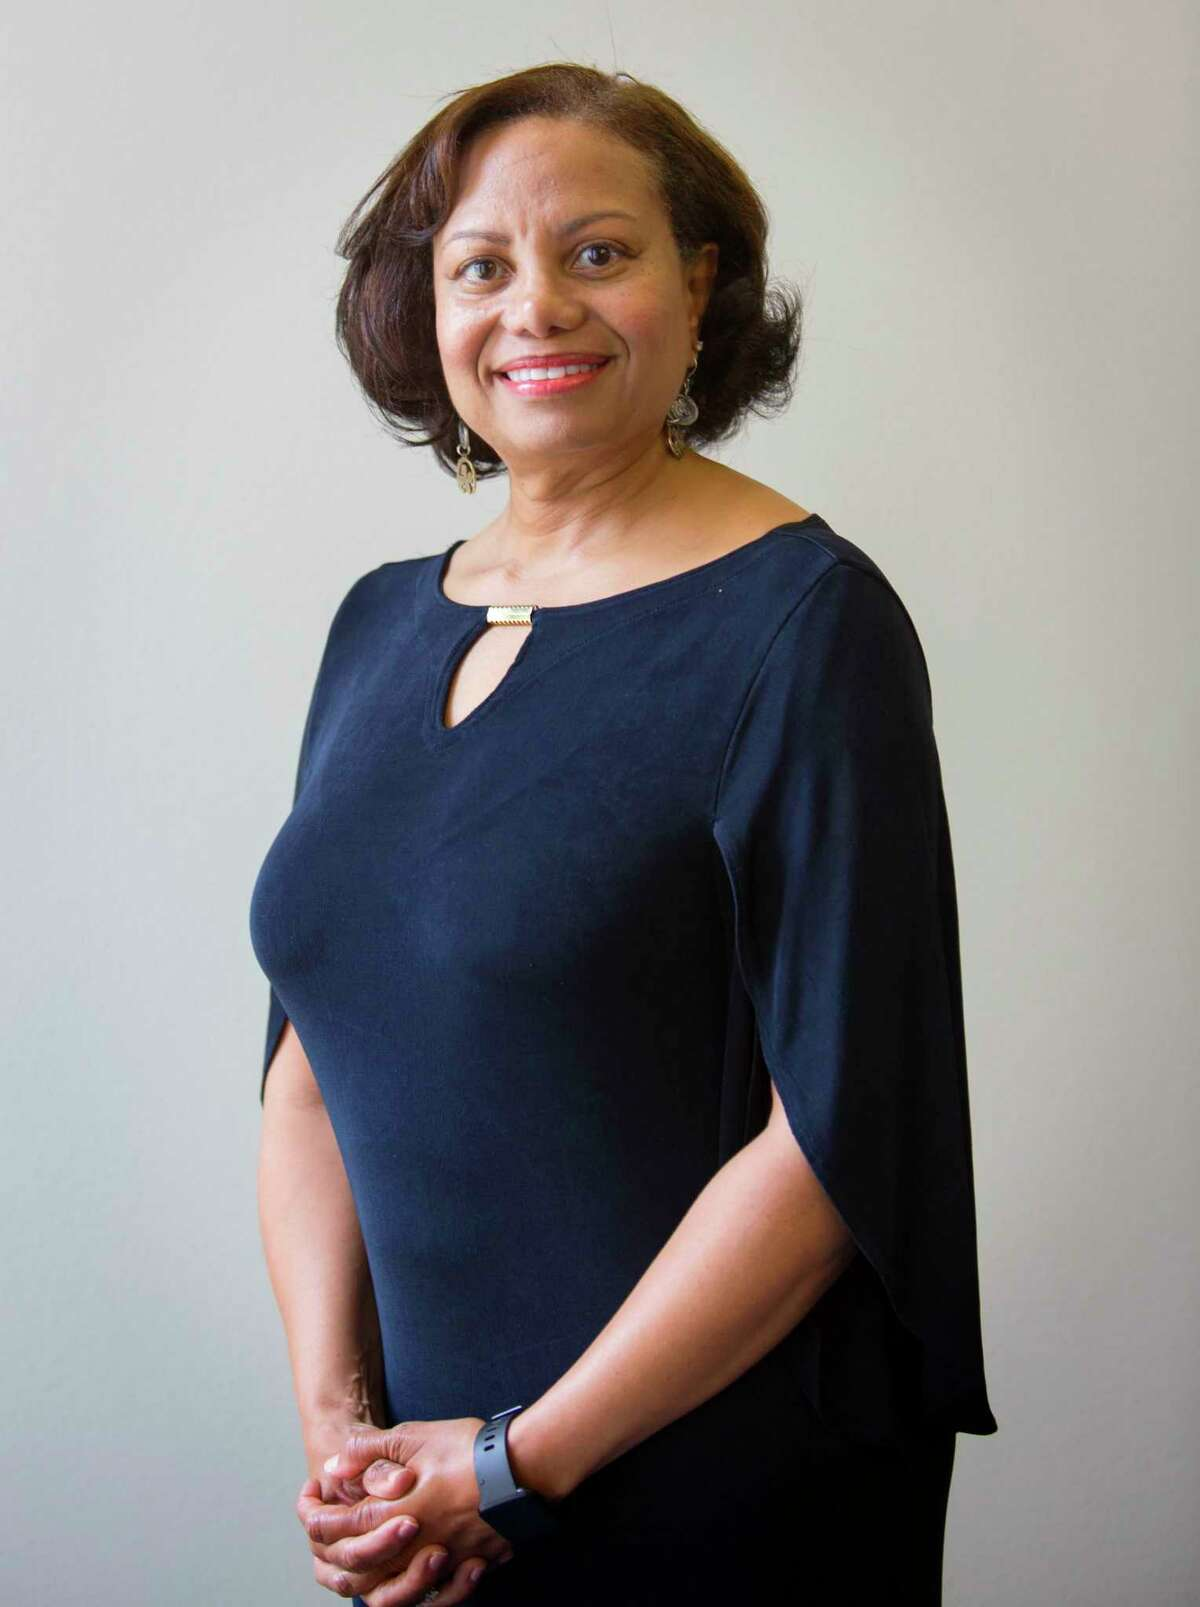 Maria Jackson (D), is a candidate for CCA Presiding Judge.